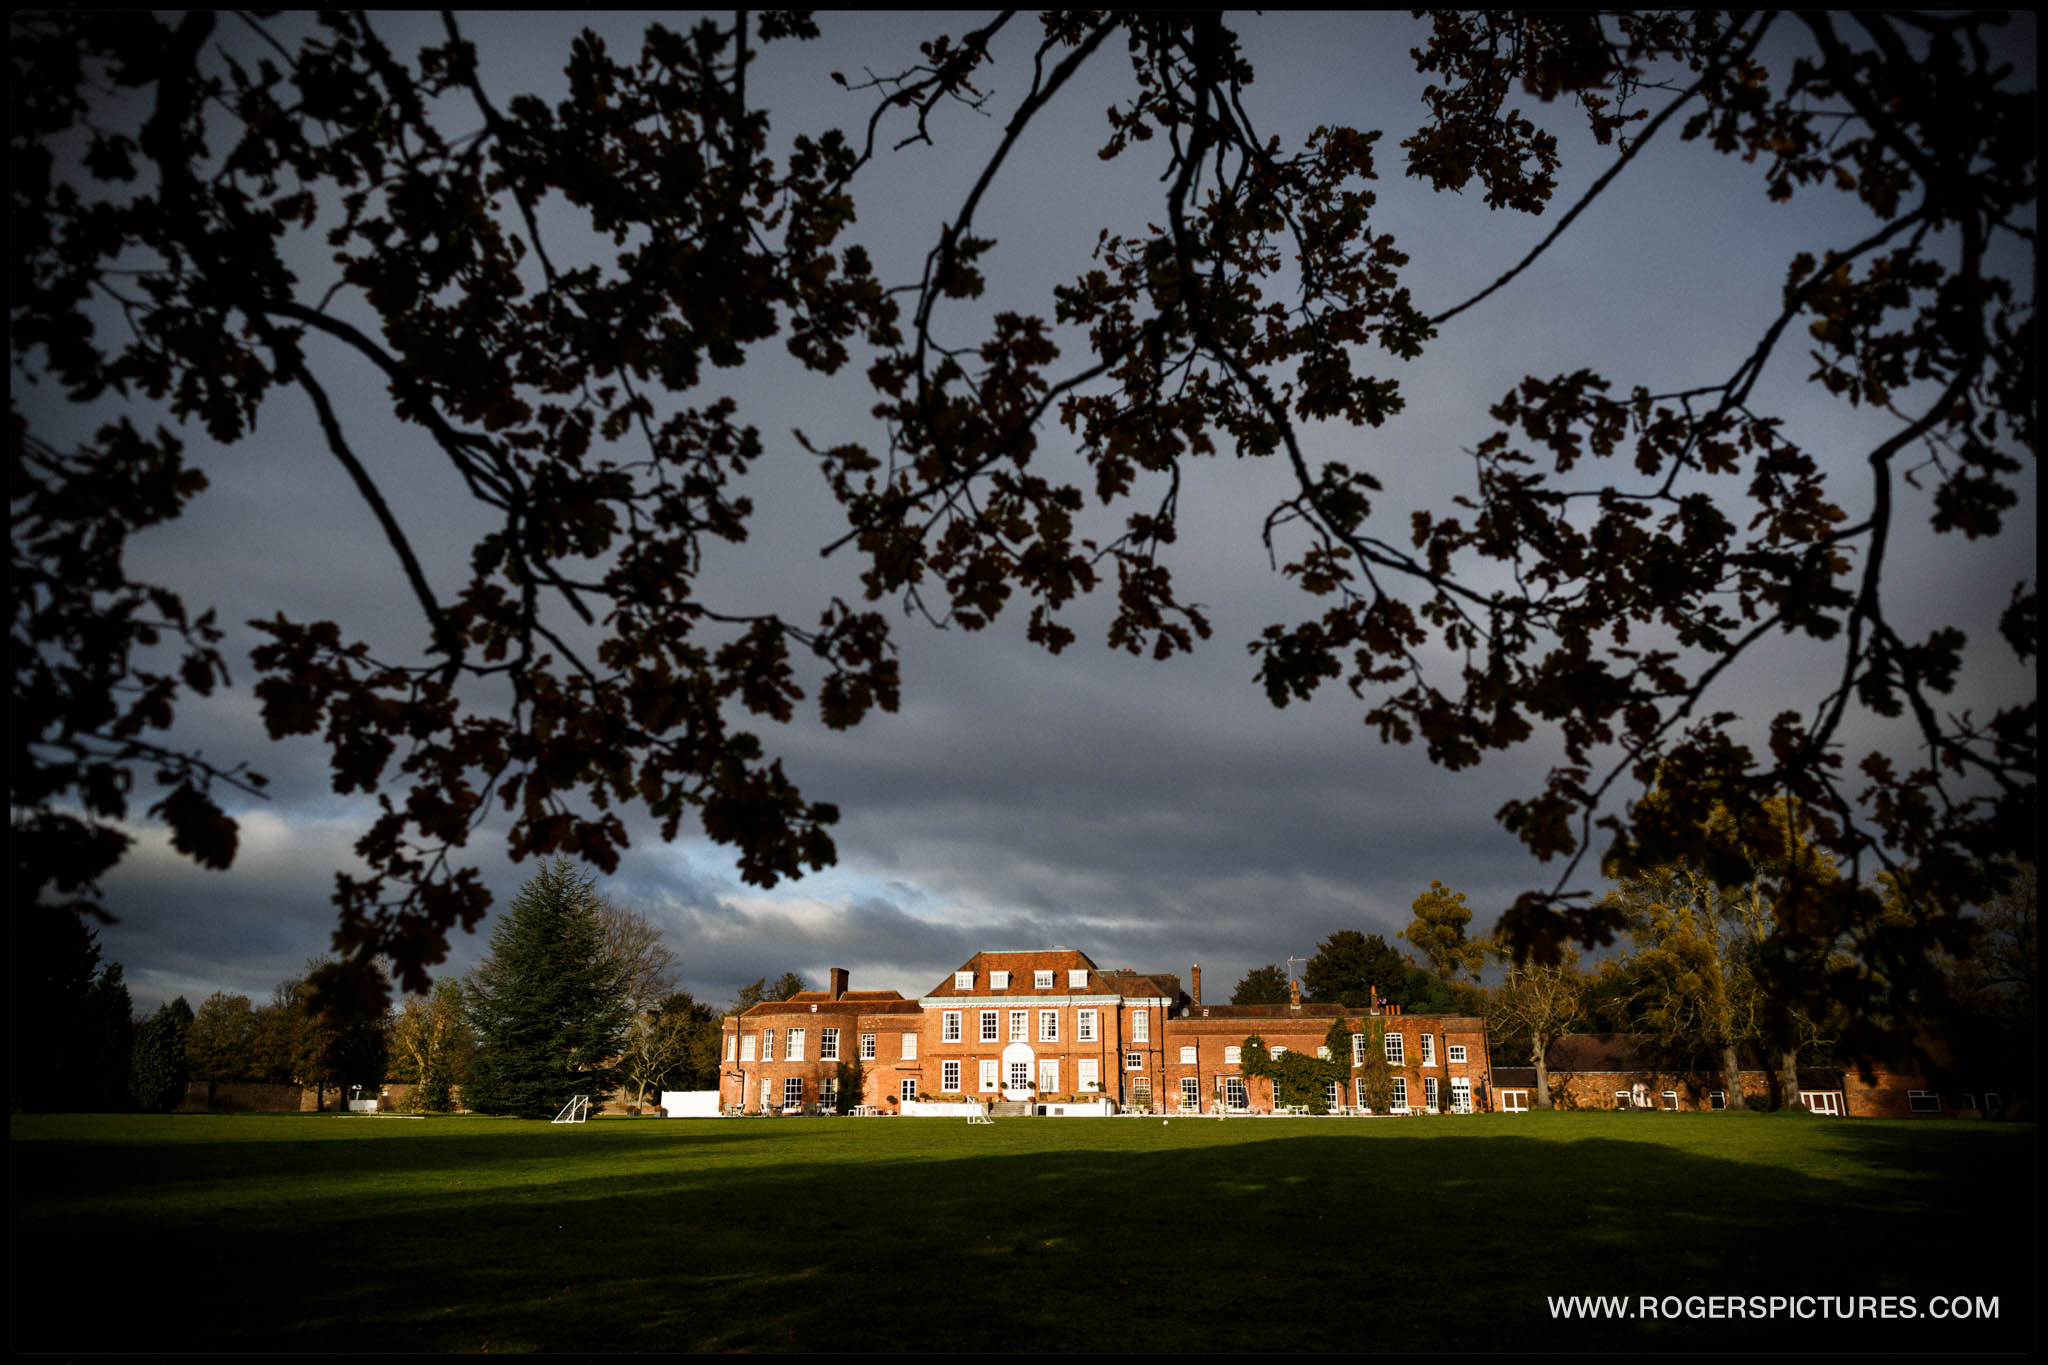 Stoke Place Hotel wedding venue